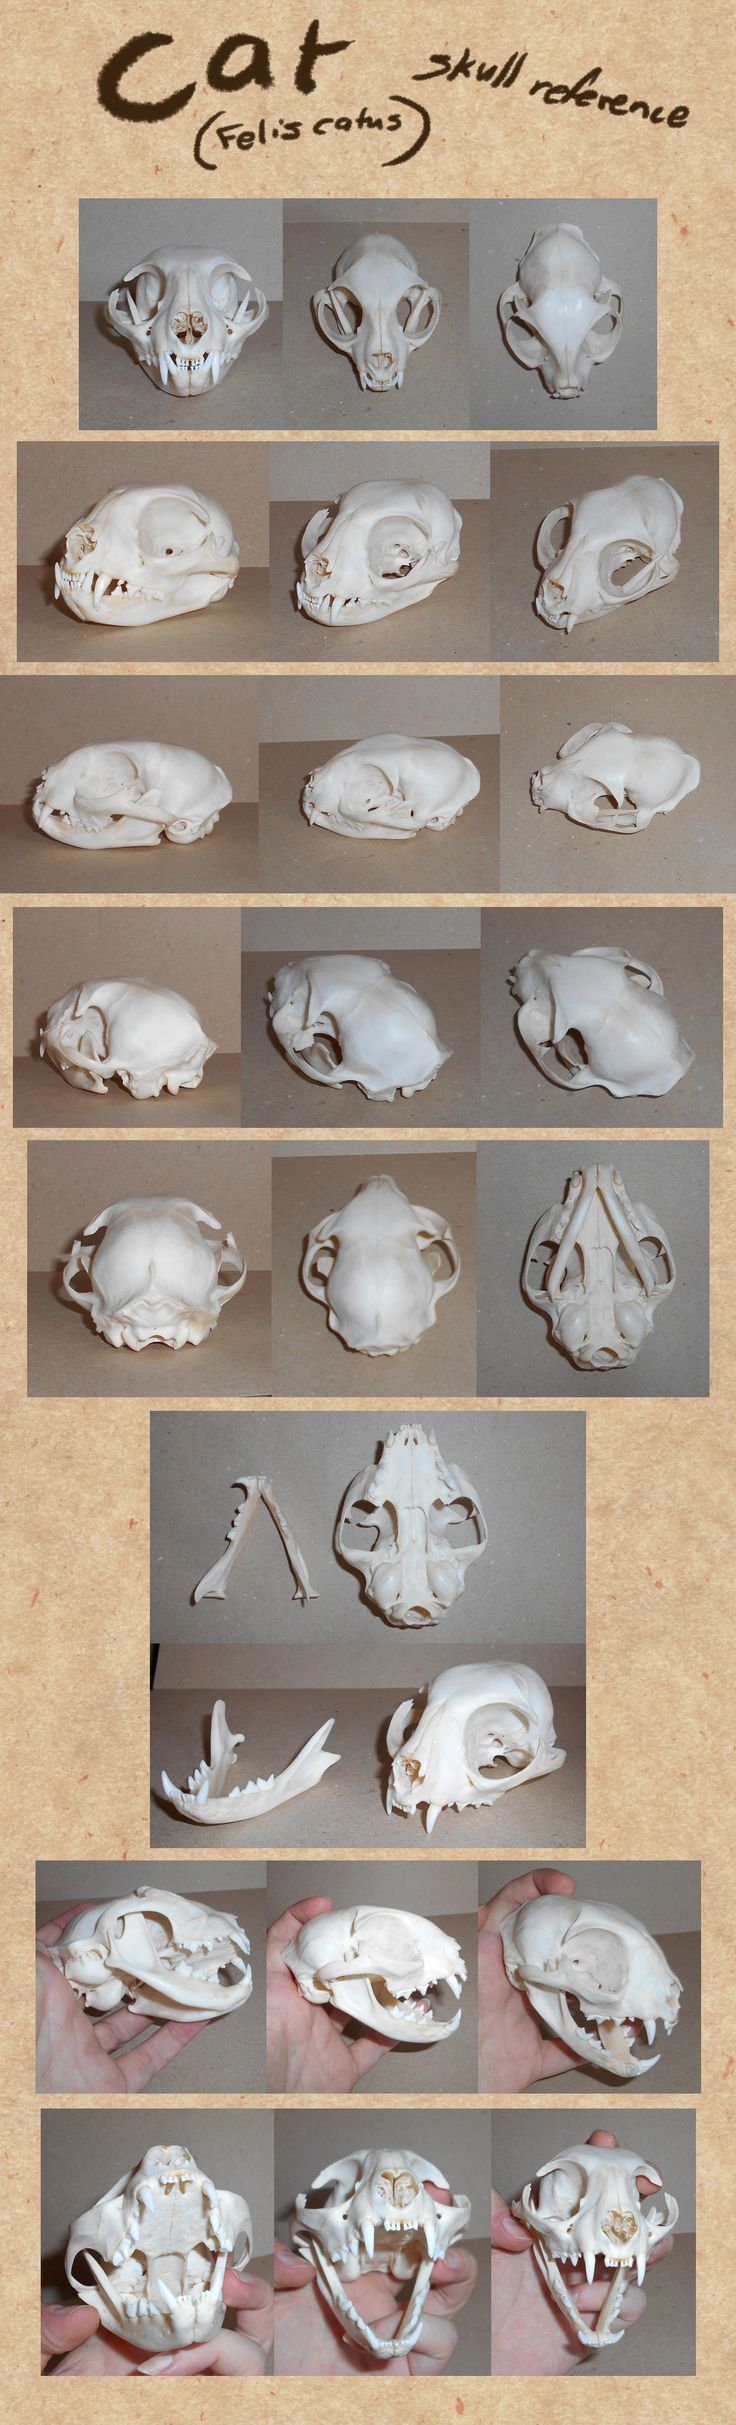 Image result for cat skull reference sheet                                                                                                                                                                                 More